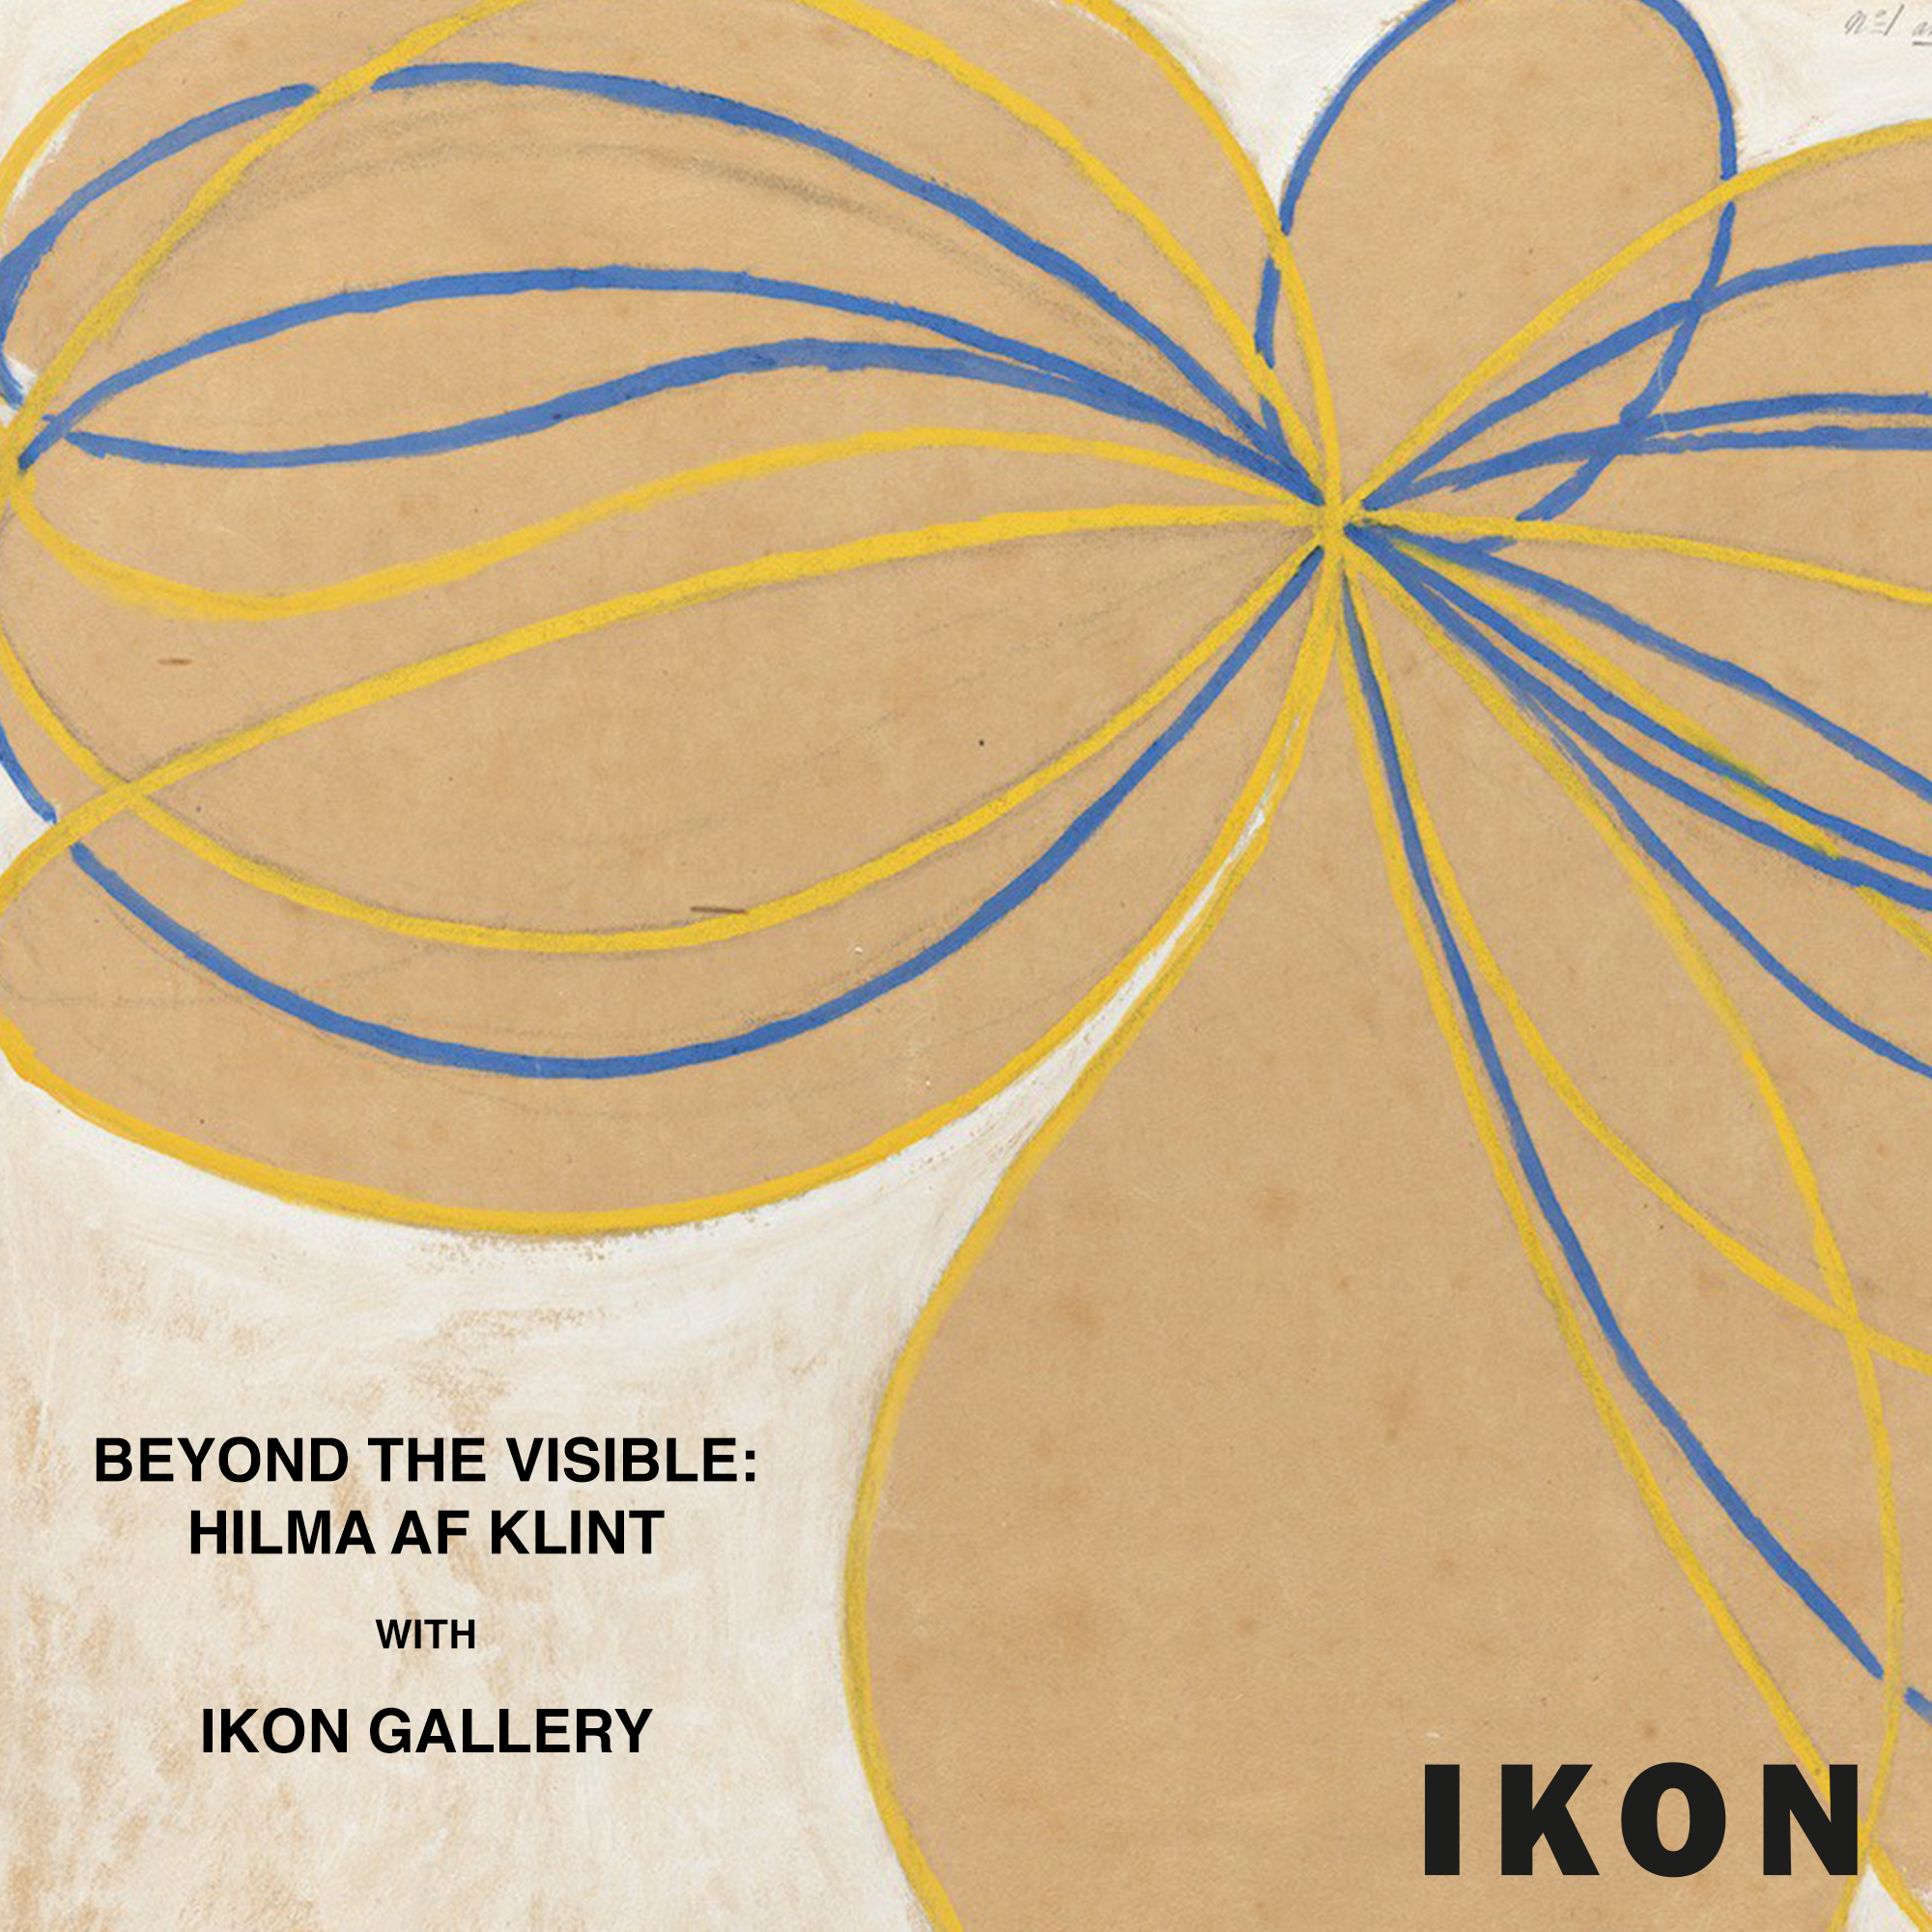 Beyond the Visible: Hilma af Klint with Ikon